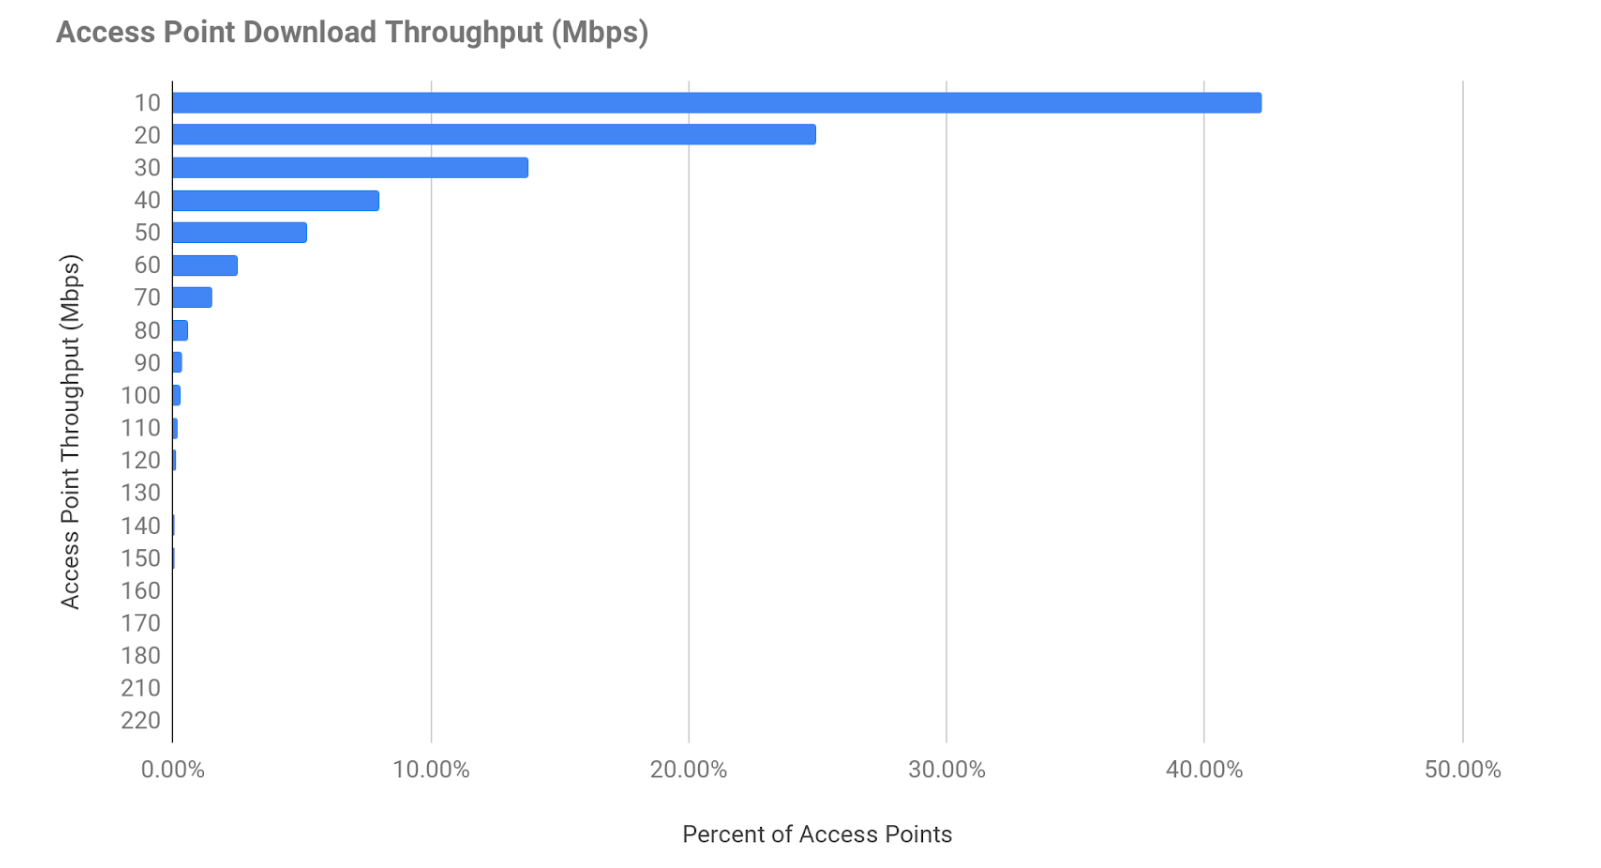 A bar chart showing Access Point Download Throughput (Mbps)